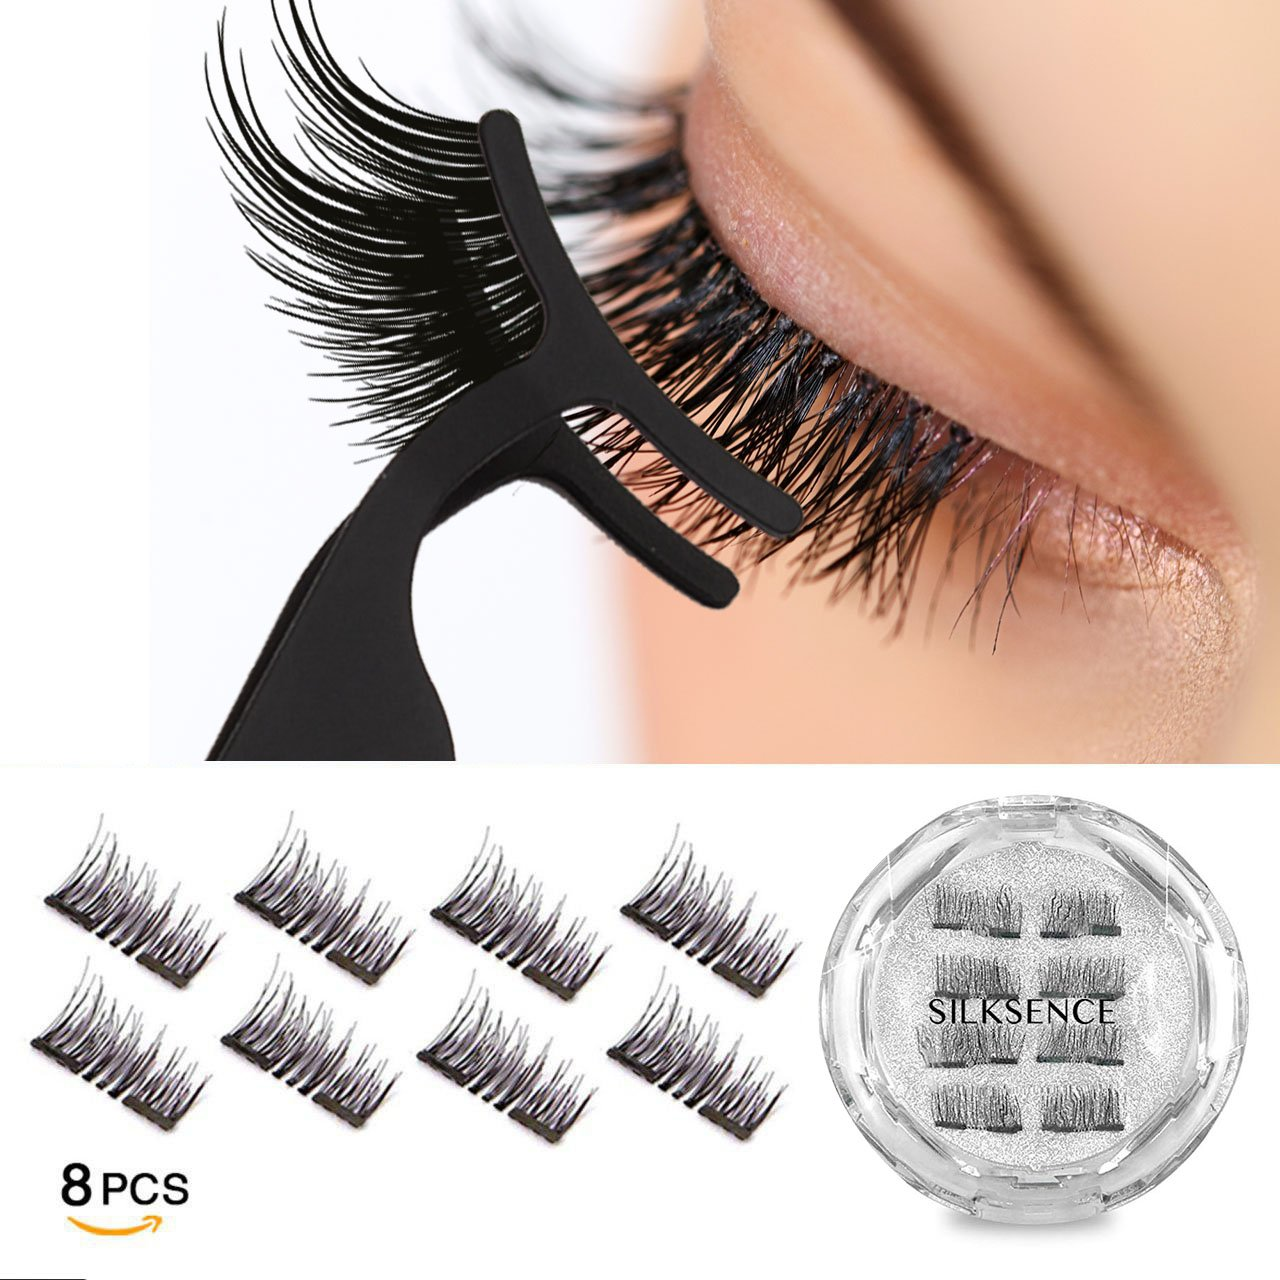 Silksence Dual Magnetic Eyelashes 0.2mm Ultra Thin Magnet Lightweight & Easy to Wear Best 3D Reusable Eyelashes Extensions With Applicator (8 PC)